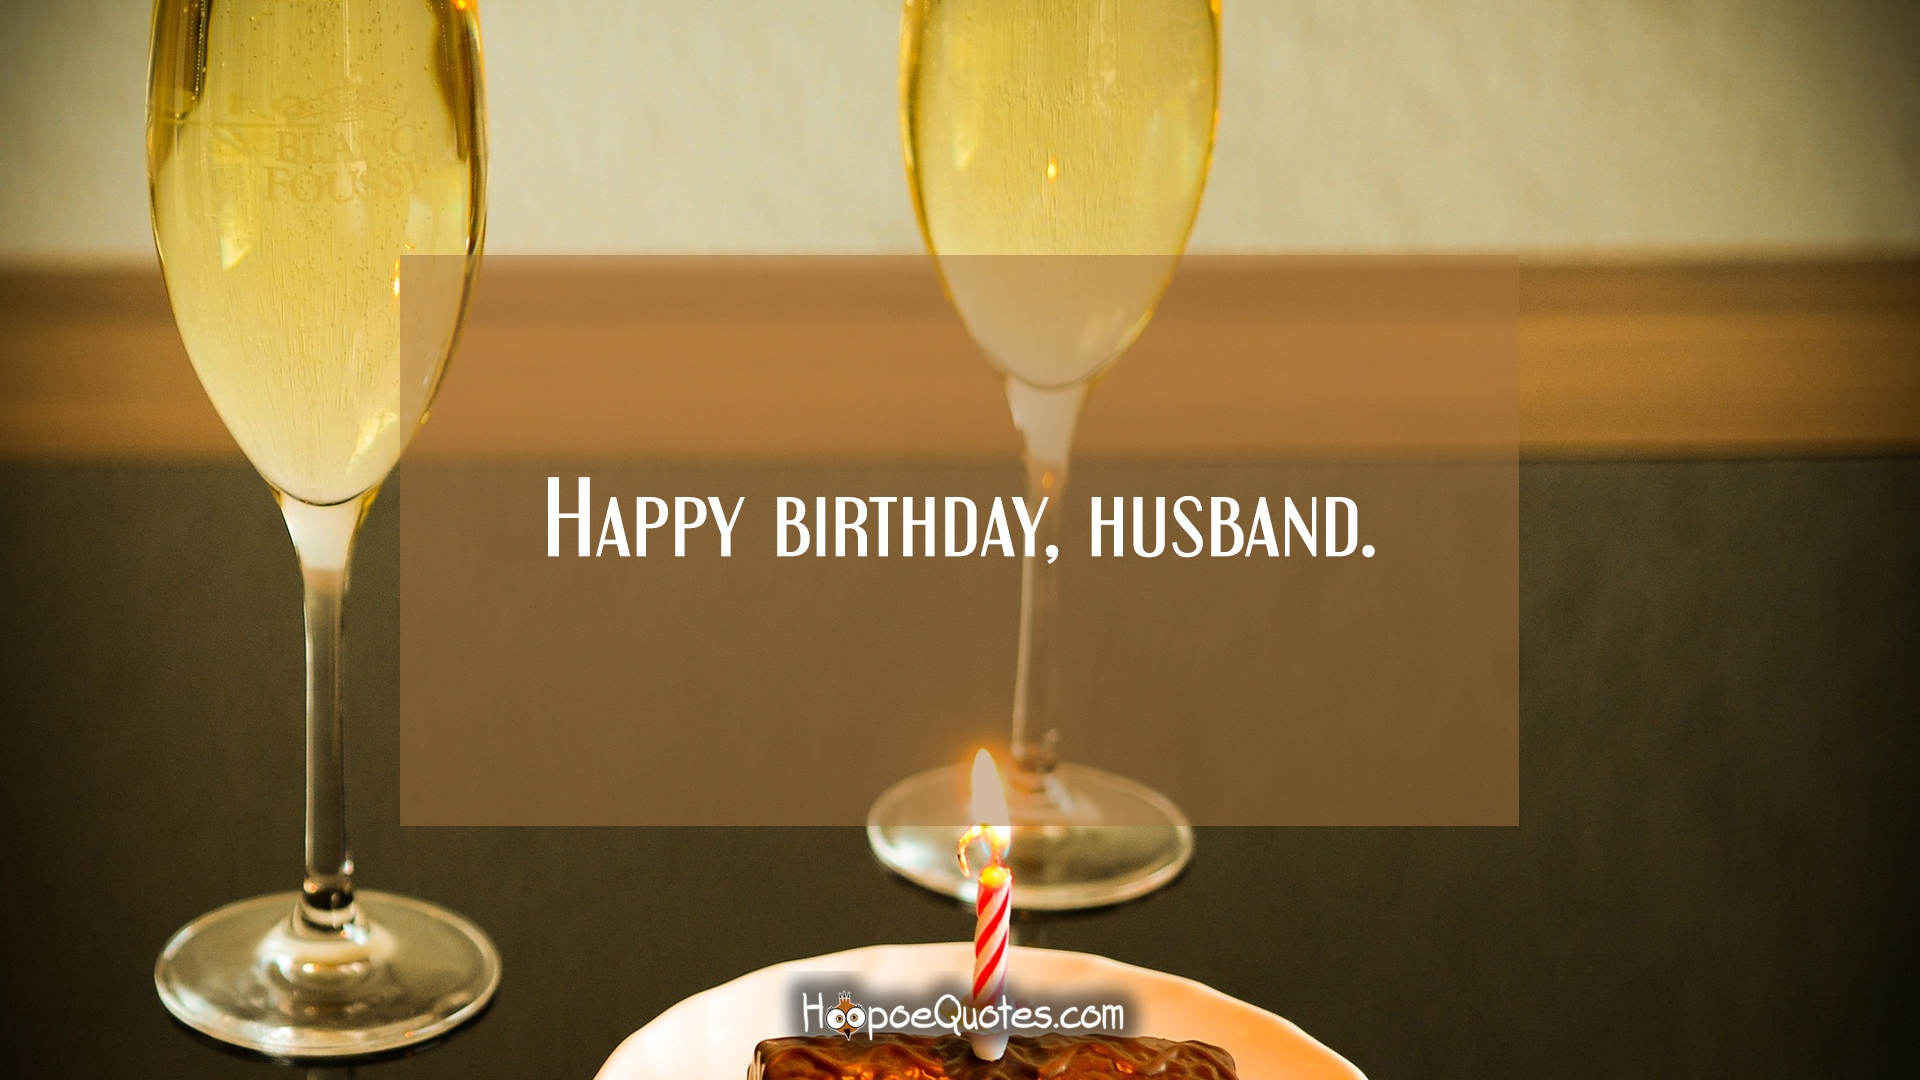 Happy Birthday Male Wine ~ Birthday wishes for someone special in your life hoopoequotes